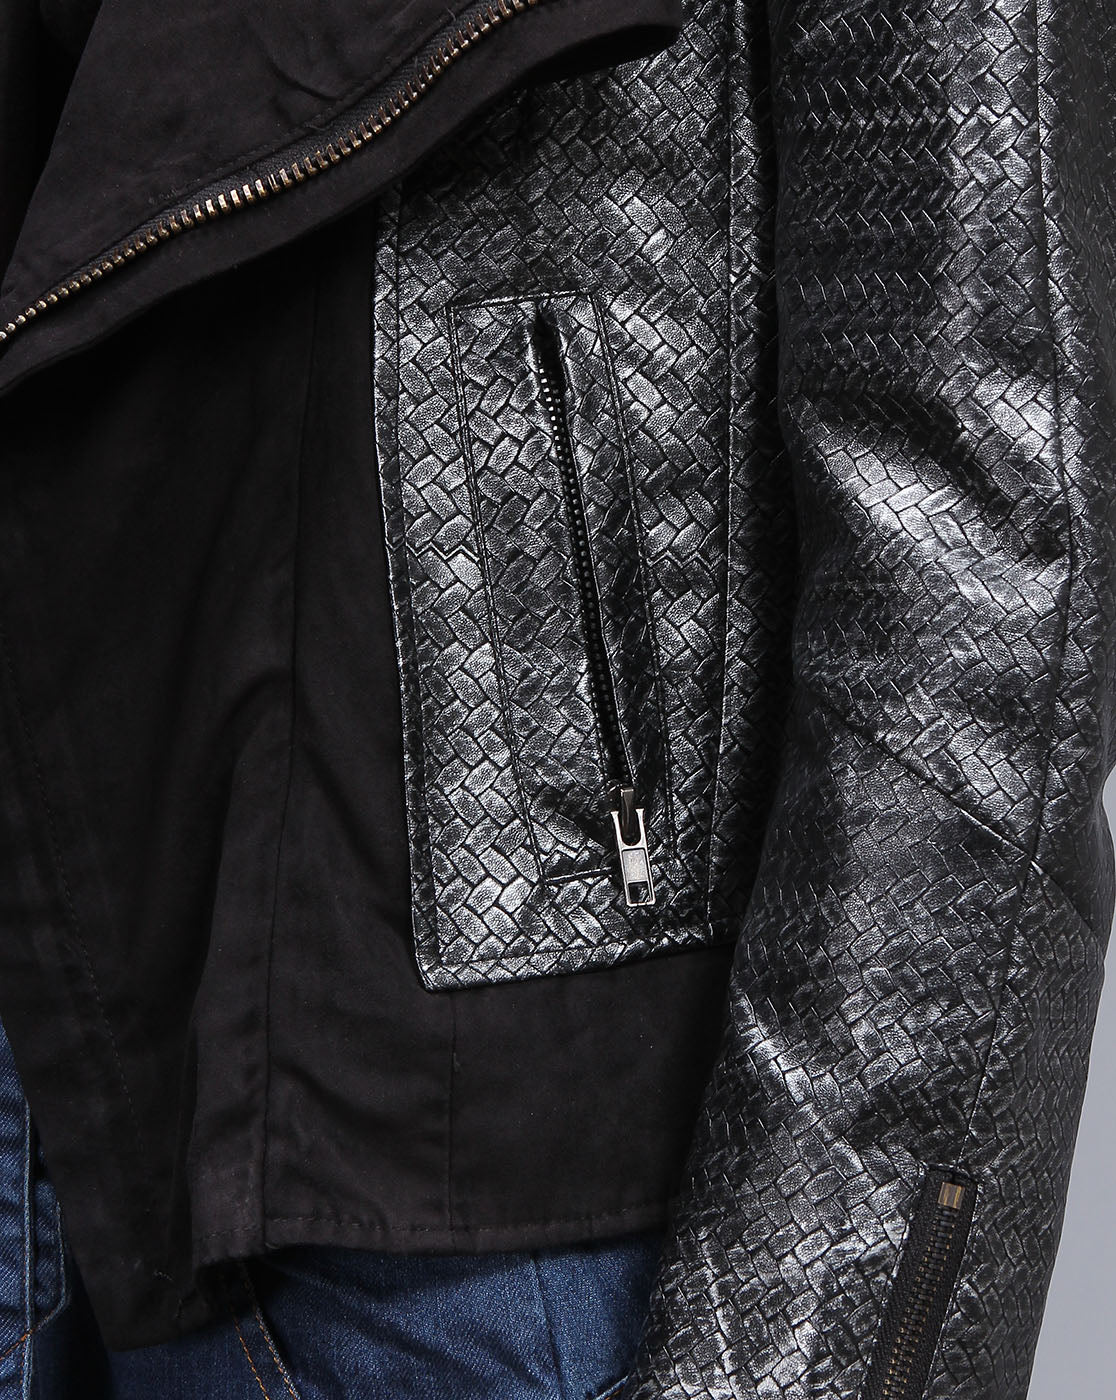 Woo silver/gray faux leather jacket with brocade print and suede lapels - Sahvant